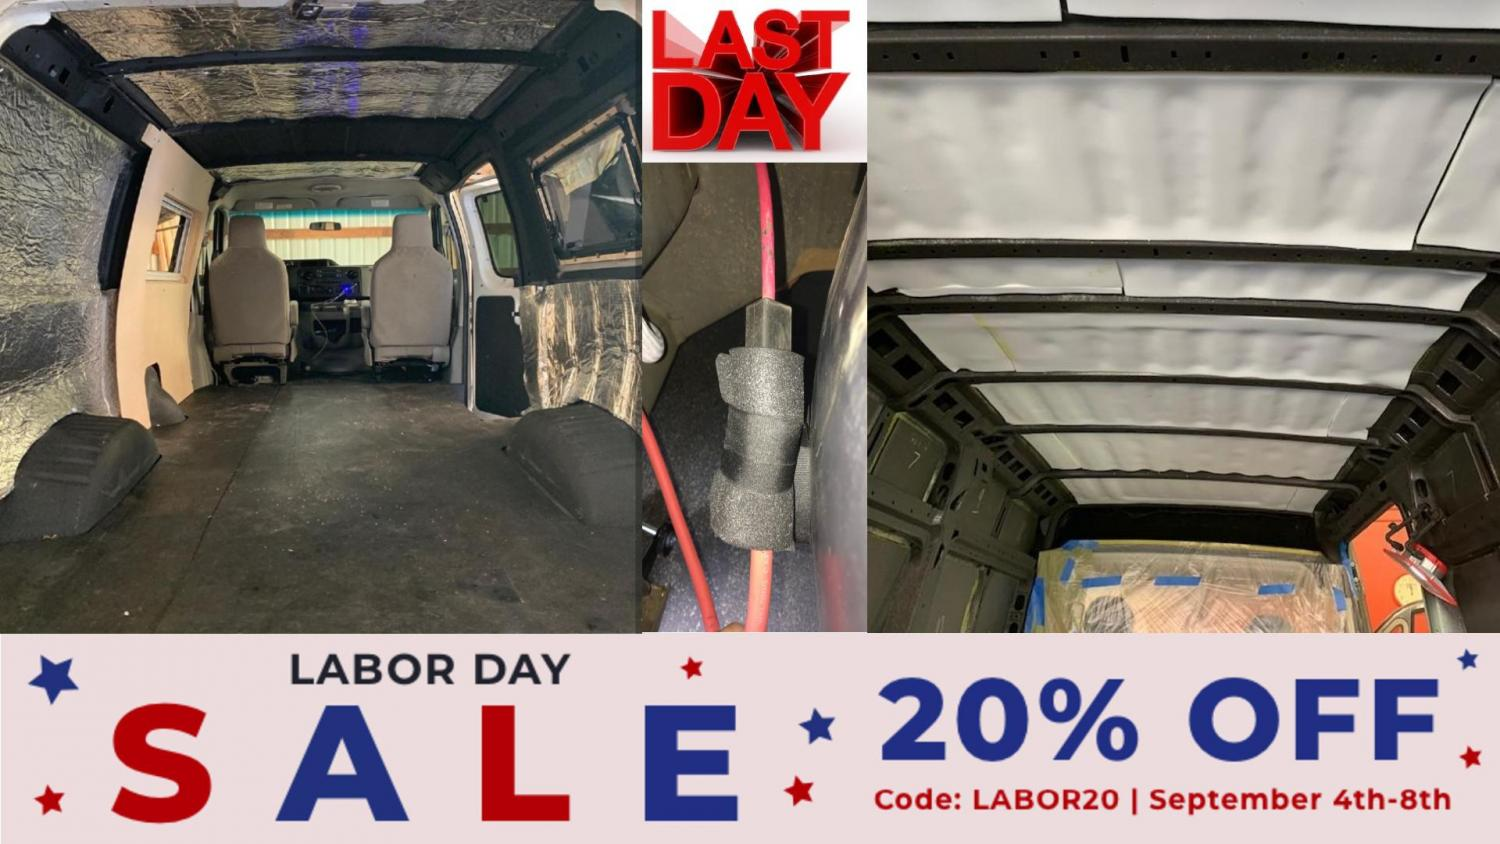 Last Day To Save Labor Day.jpg